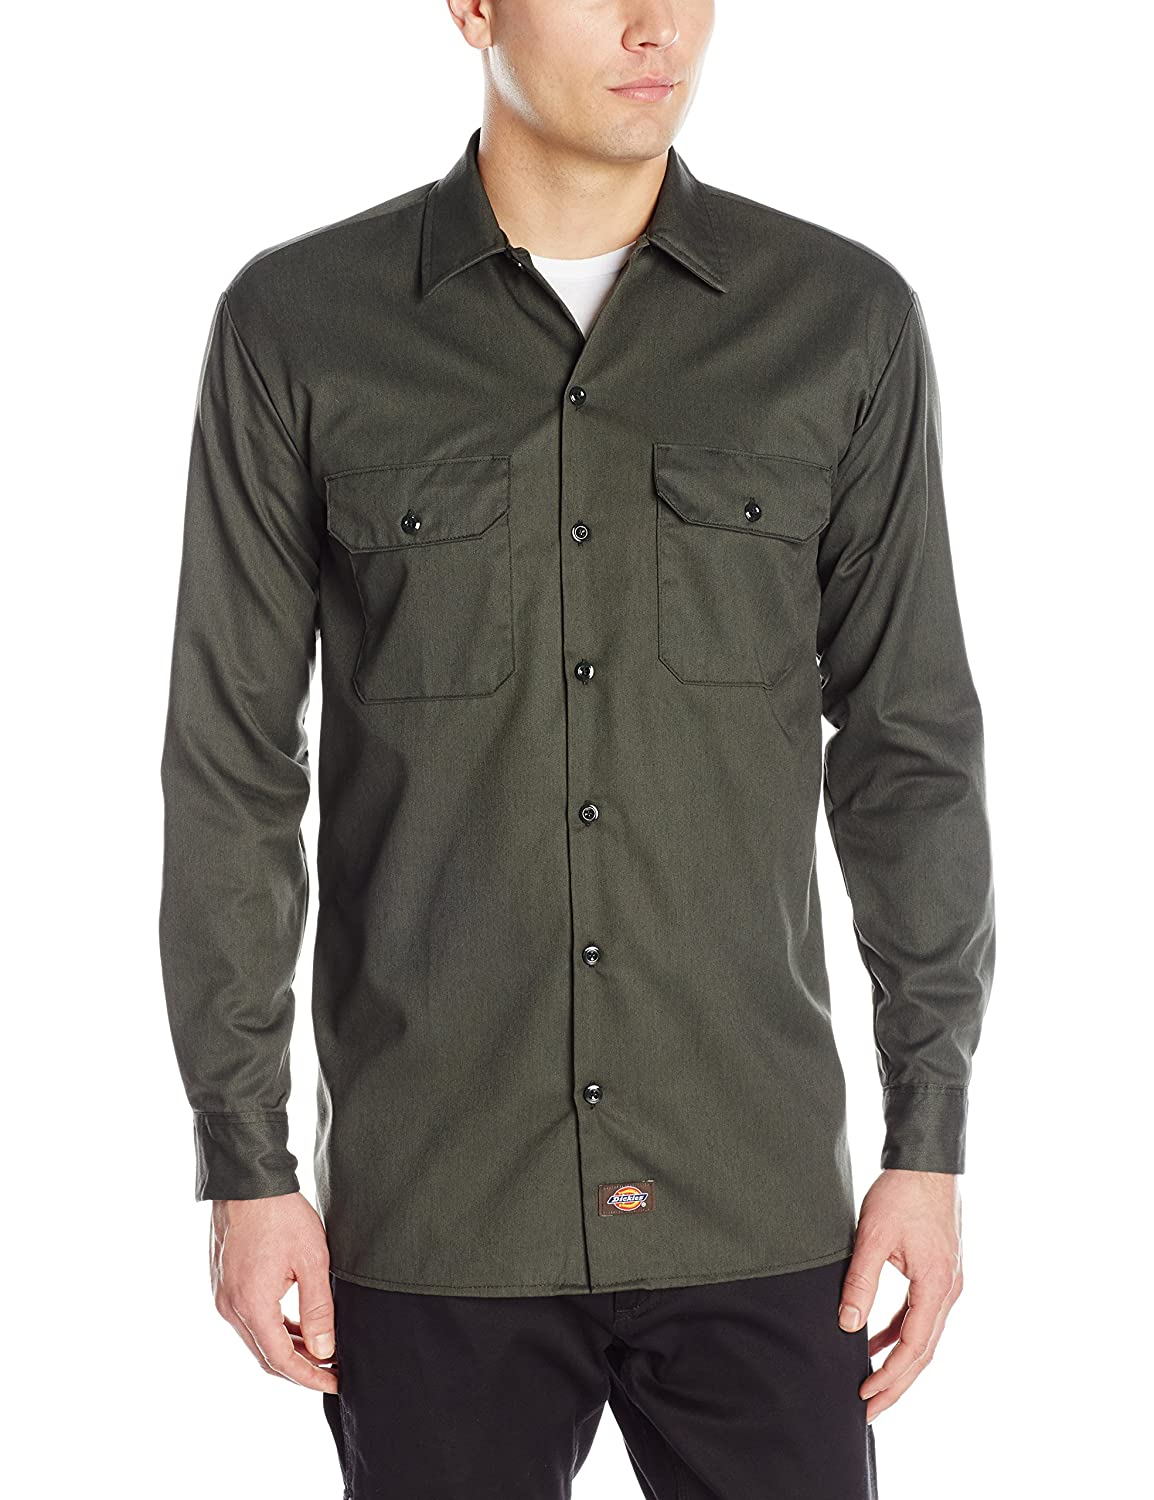 Vert Olive 3XL Dickies Chemise Manches longues Homme